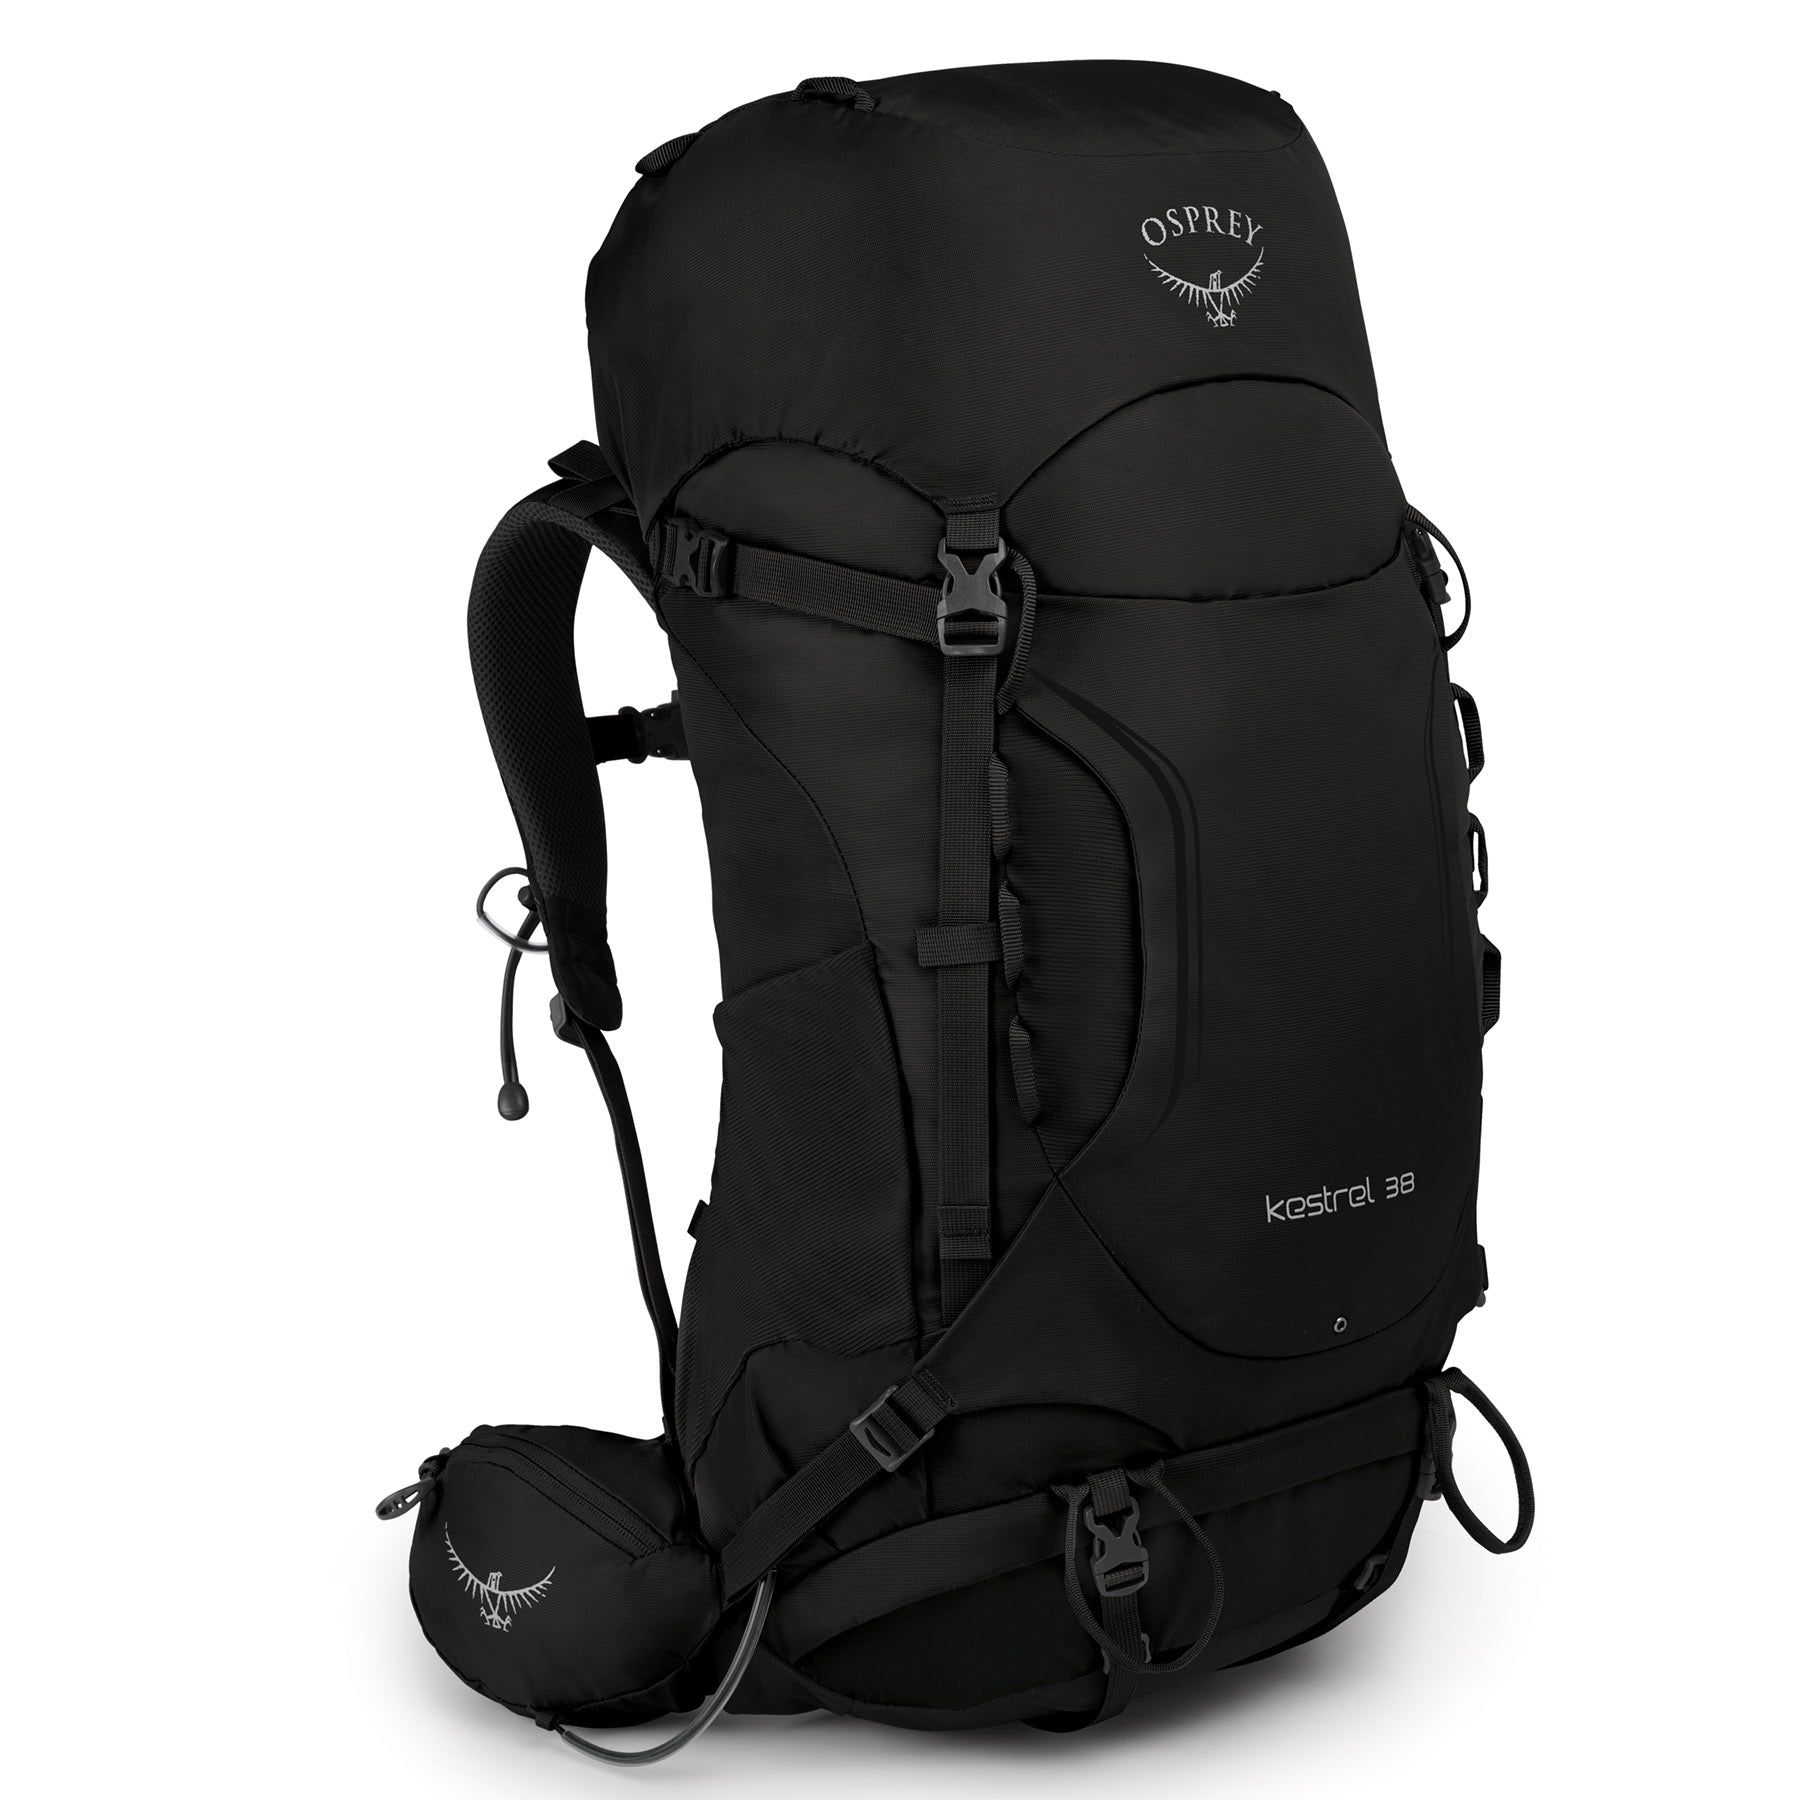 osprey kestrel 38 in black, front view